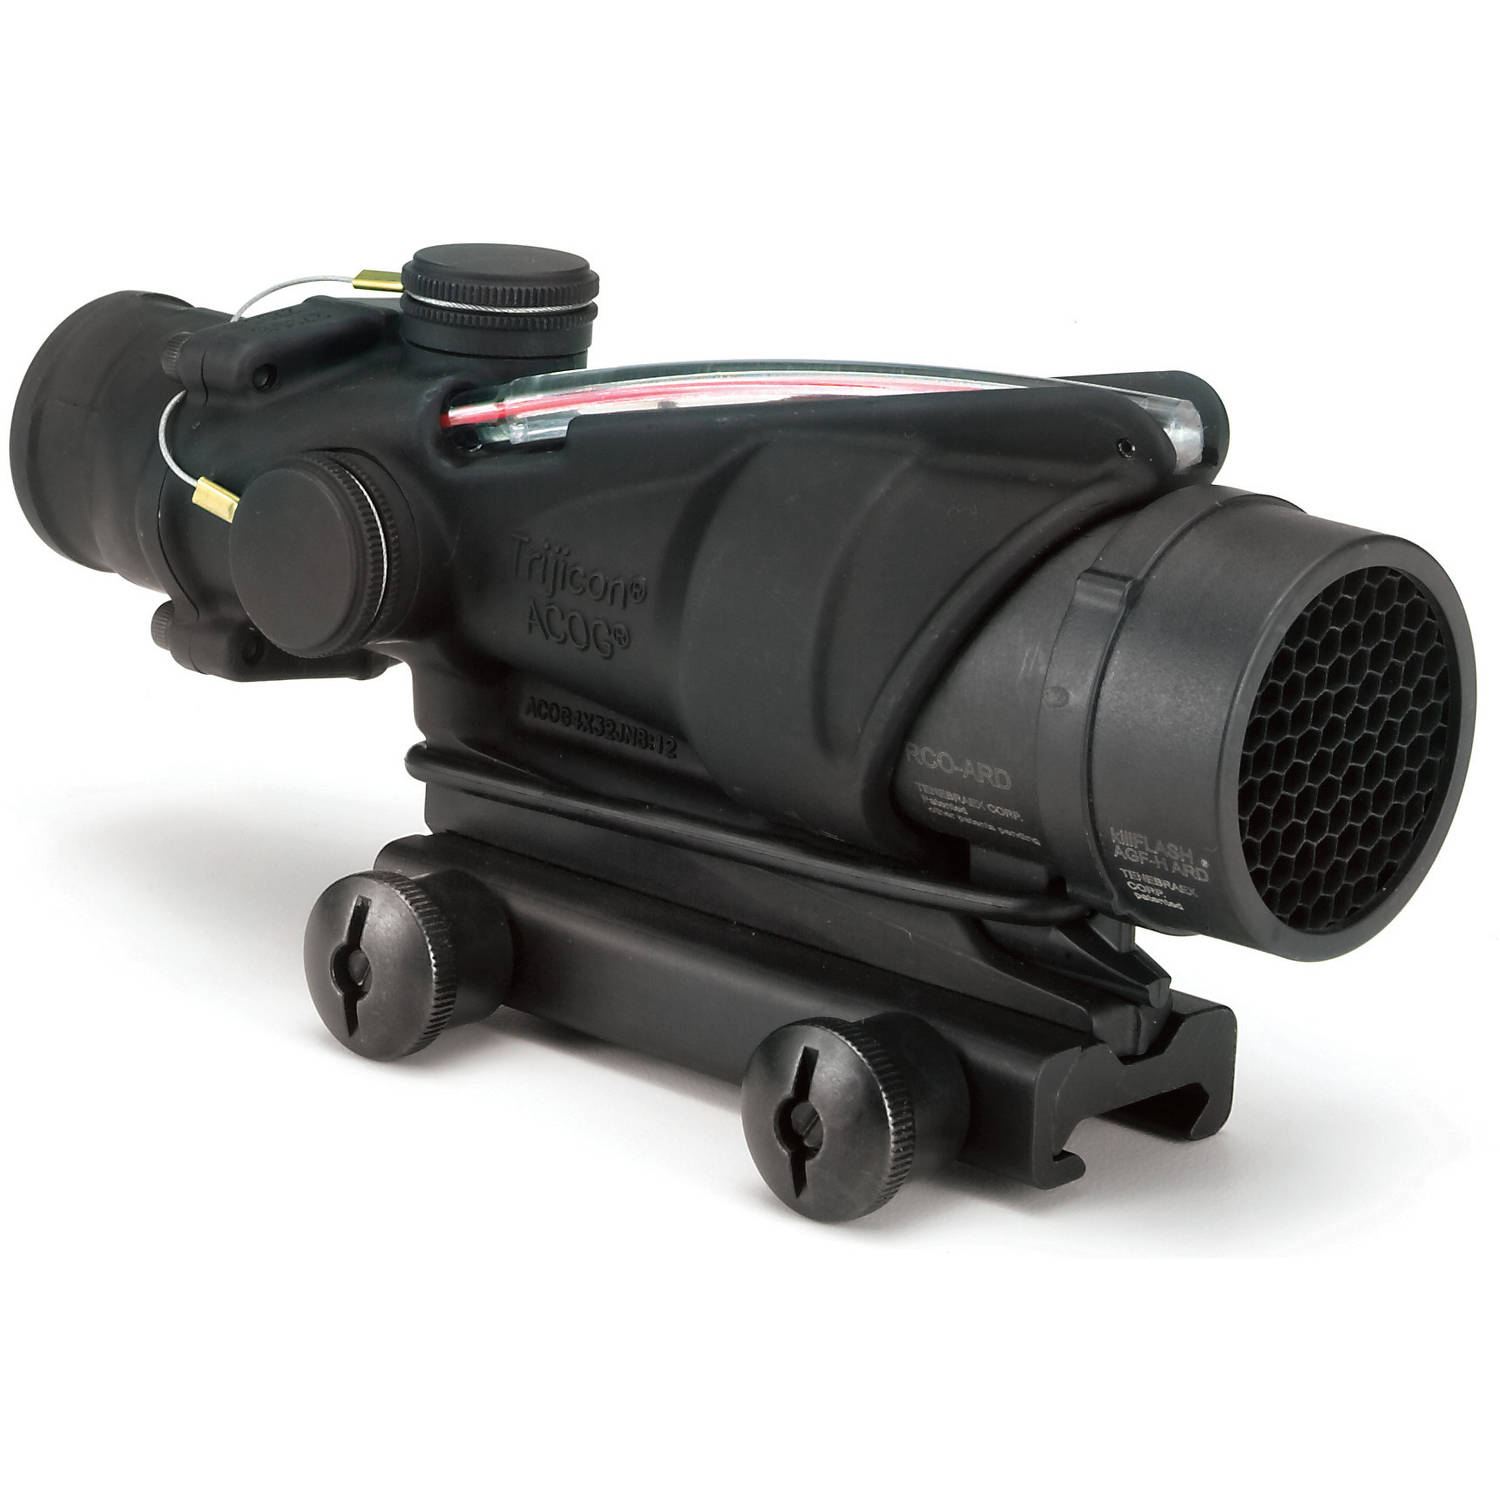 Trijicon ACOG Rifle Scope, 4X 32, Red Chevron Reticle BAC-M16A4, Matte